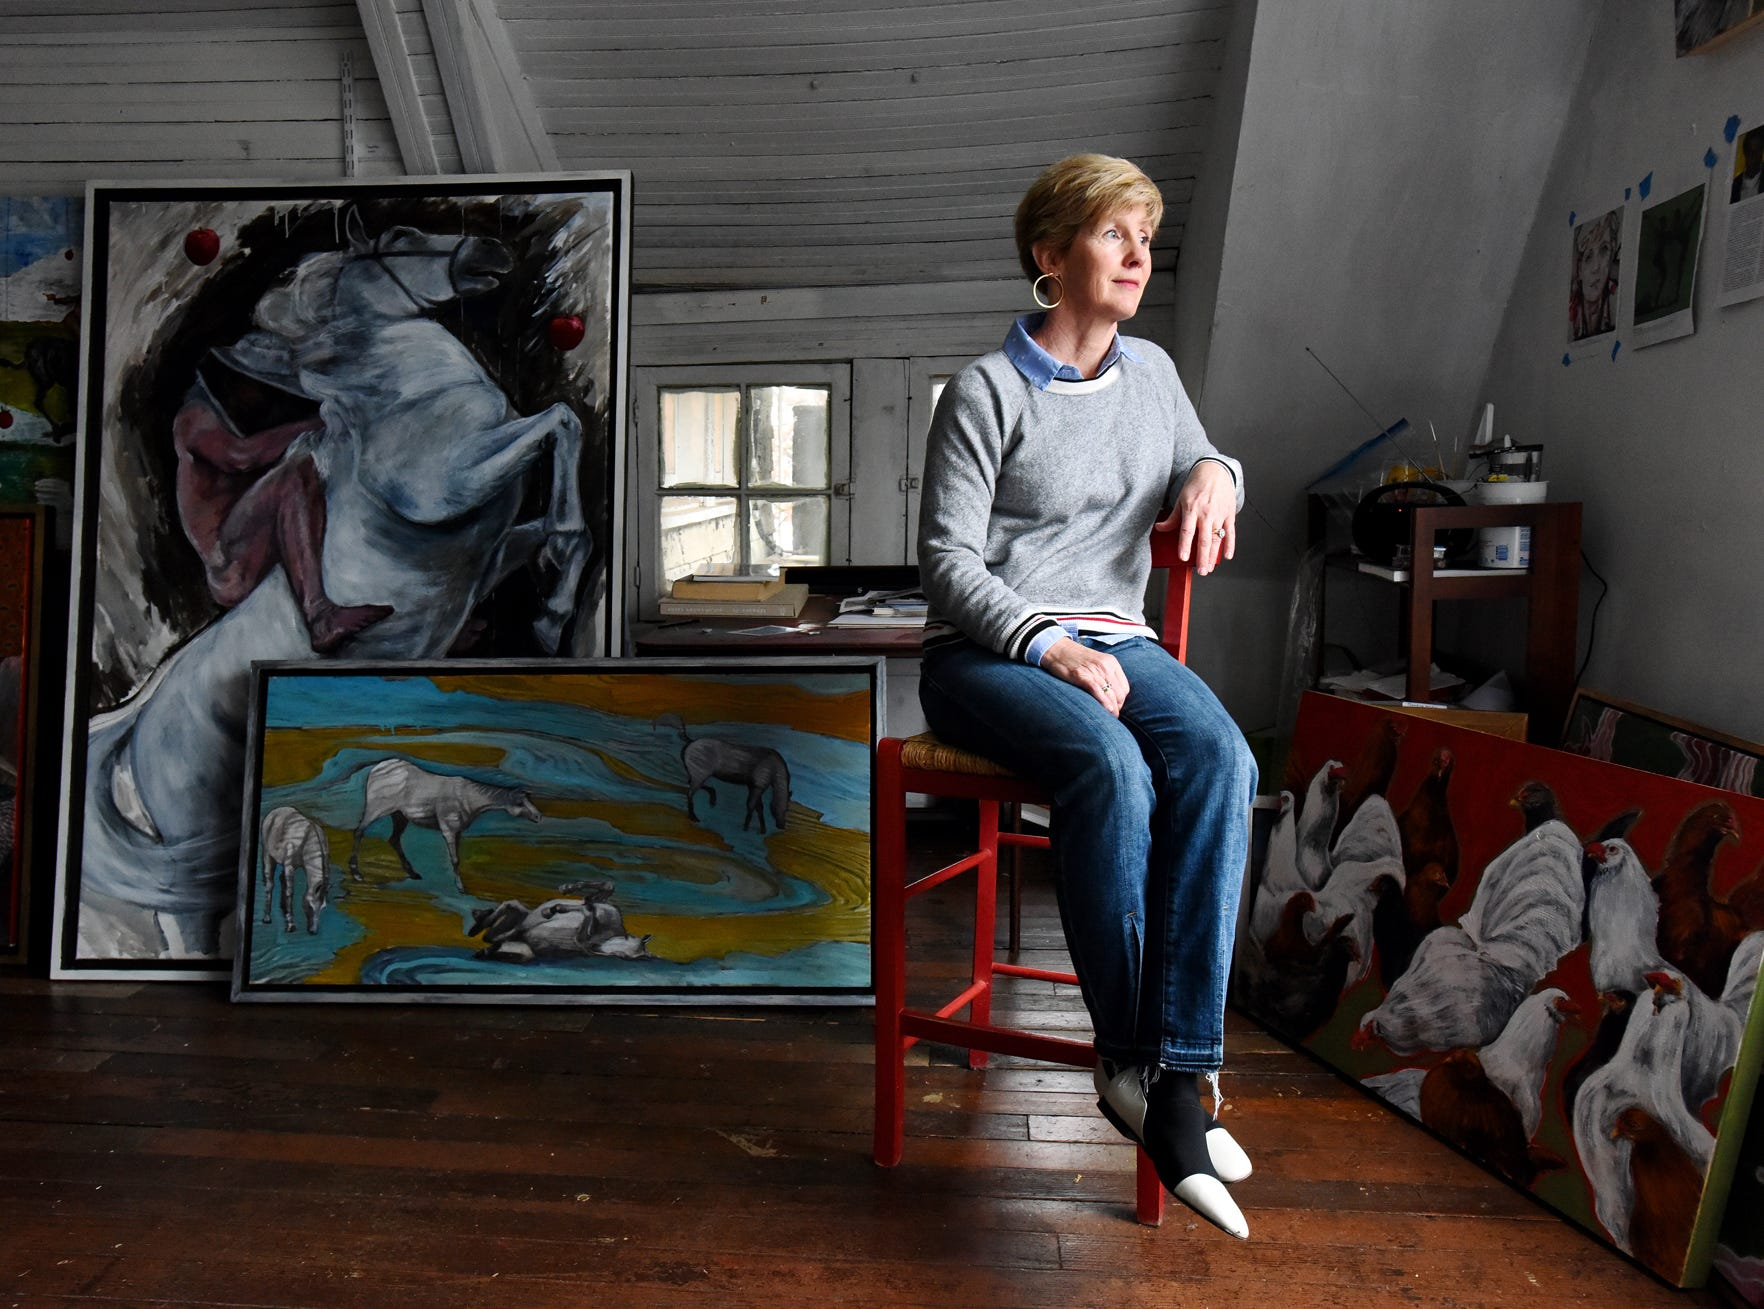 Garland Mattox pictured at her studio at While Whale Studios in Greenville.